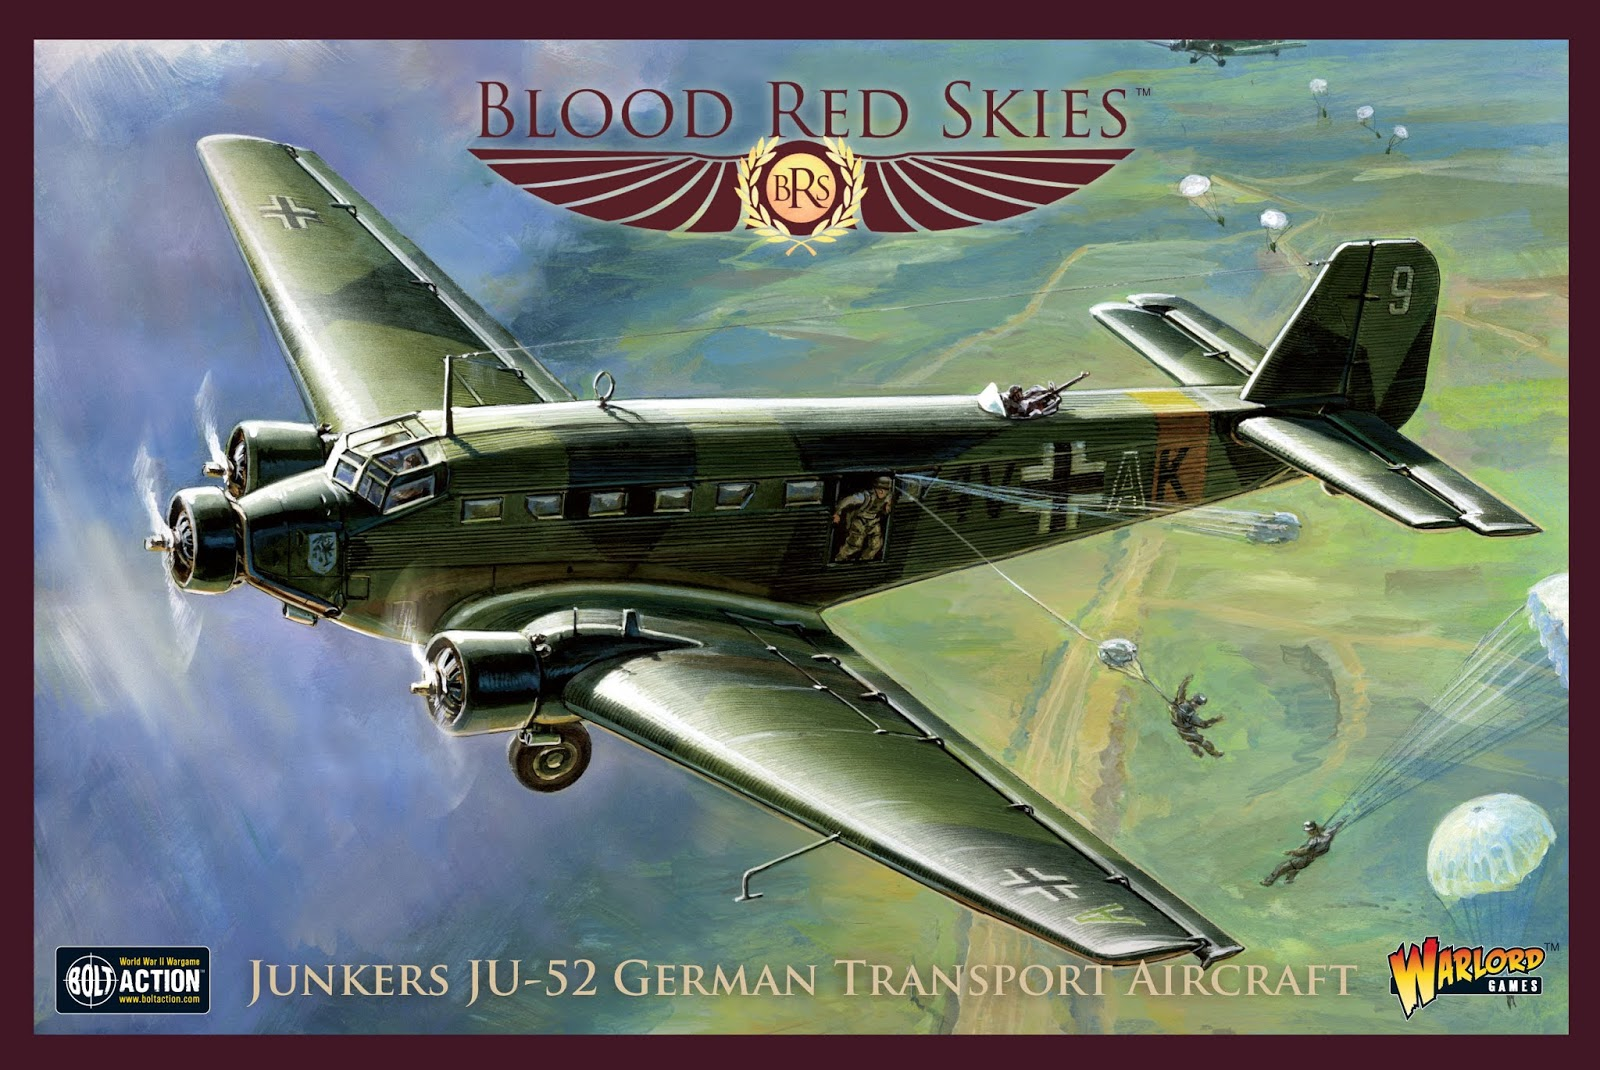 Junkers JU52 German Transport Aircraft - Blood Red Skies